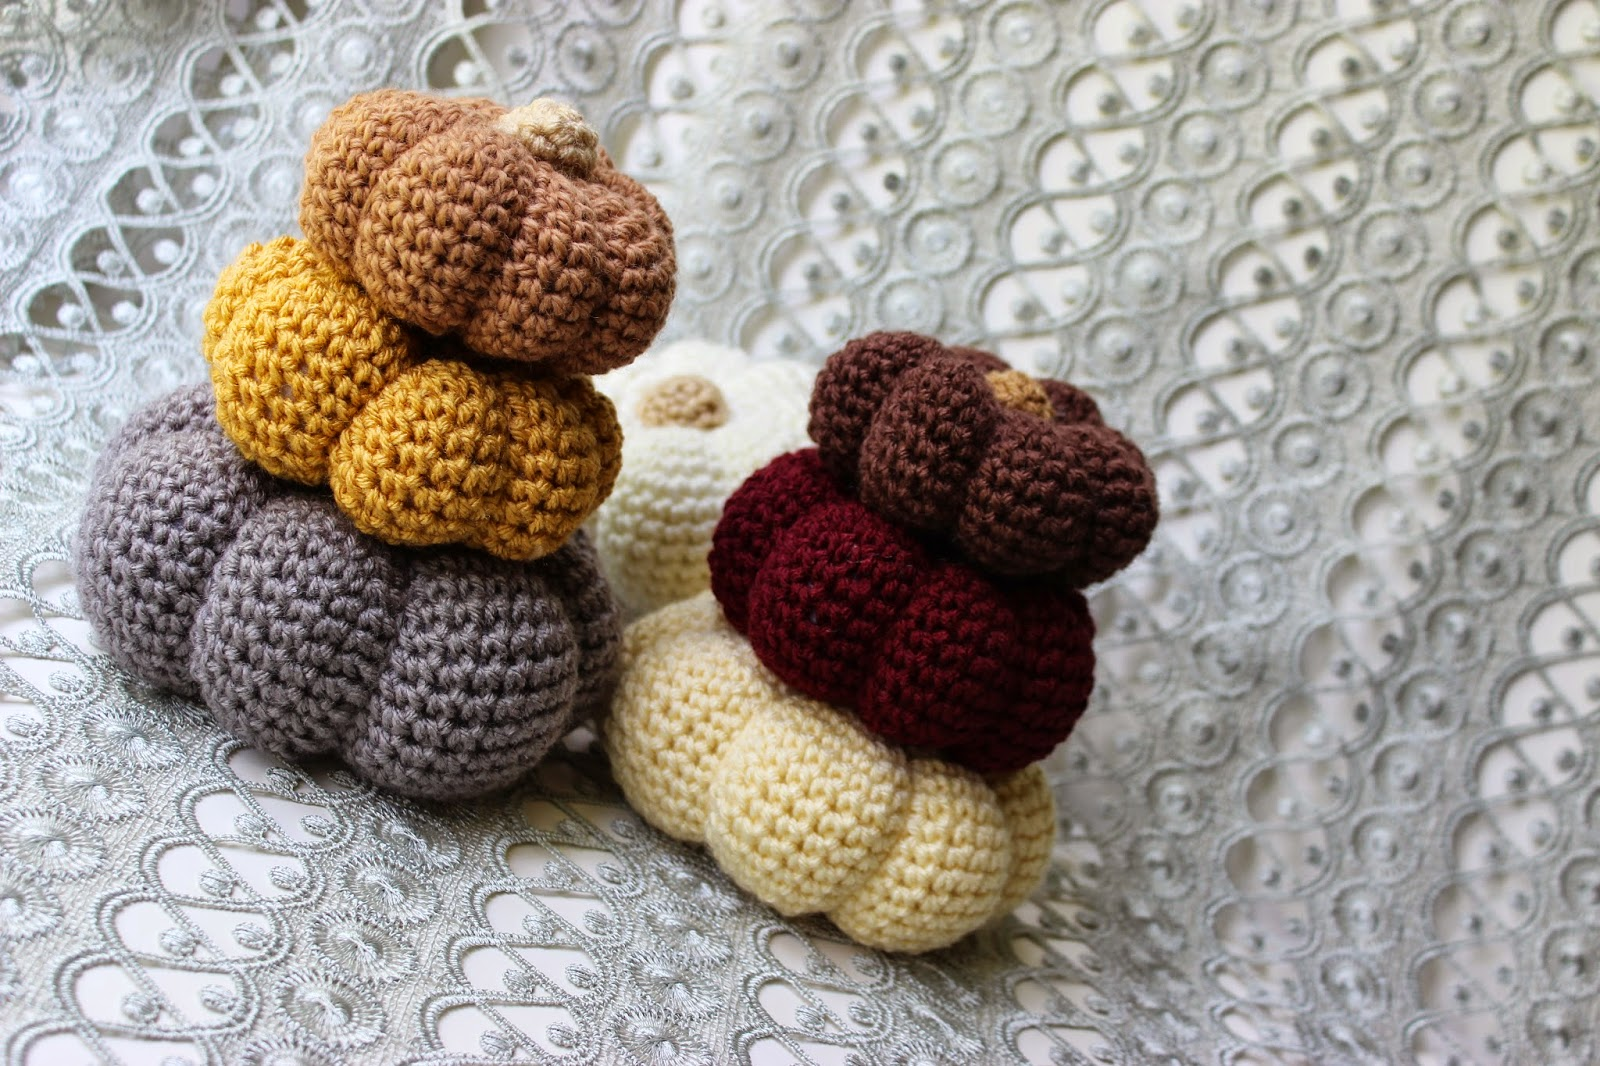 Crochet these sweet little pumpkins in modern colors. Stack them together or just a scattered little pile is always fun.